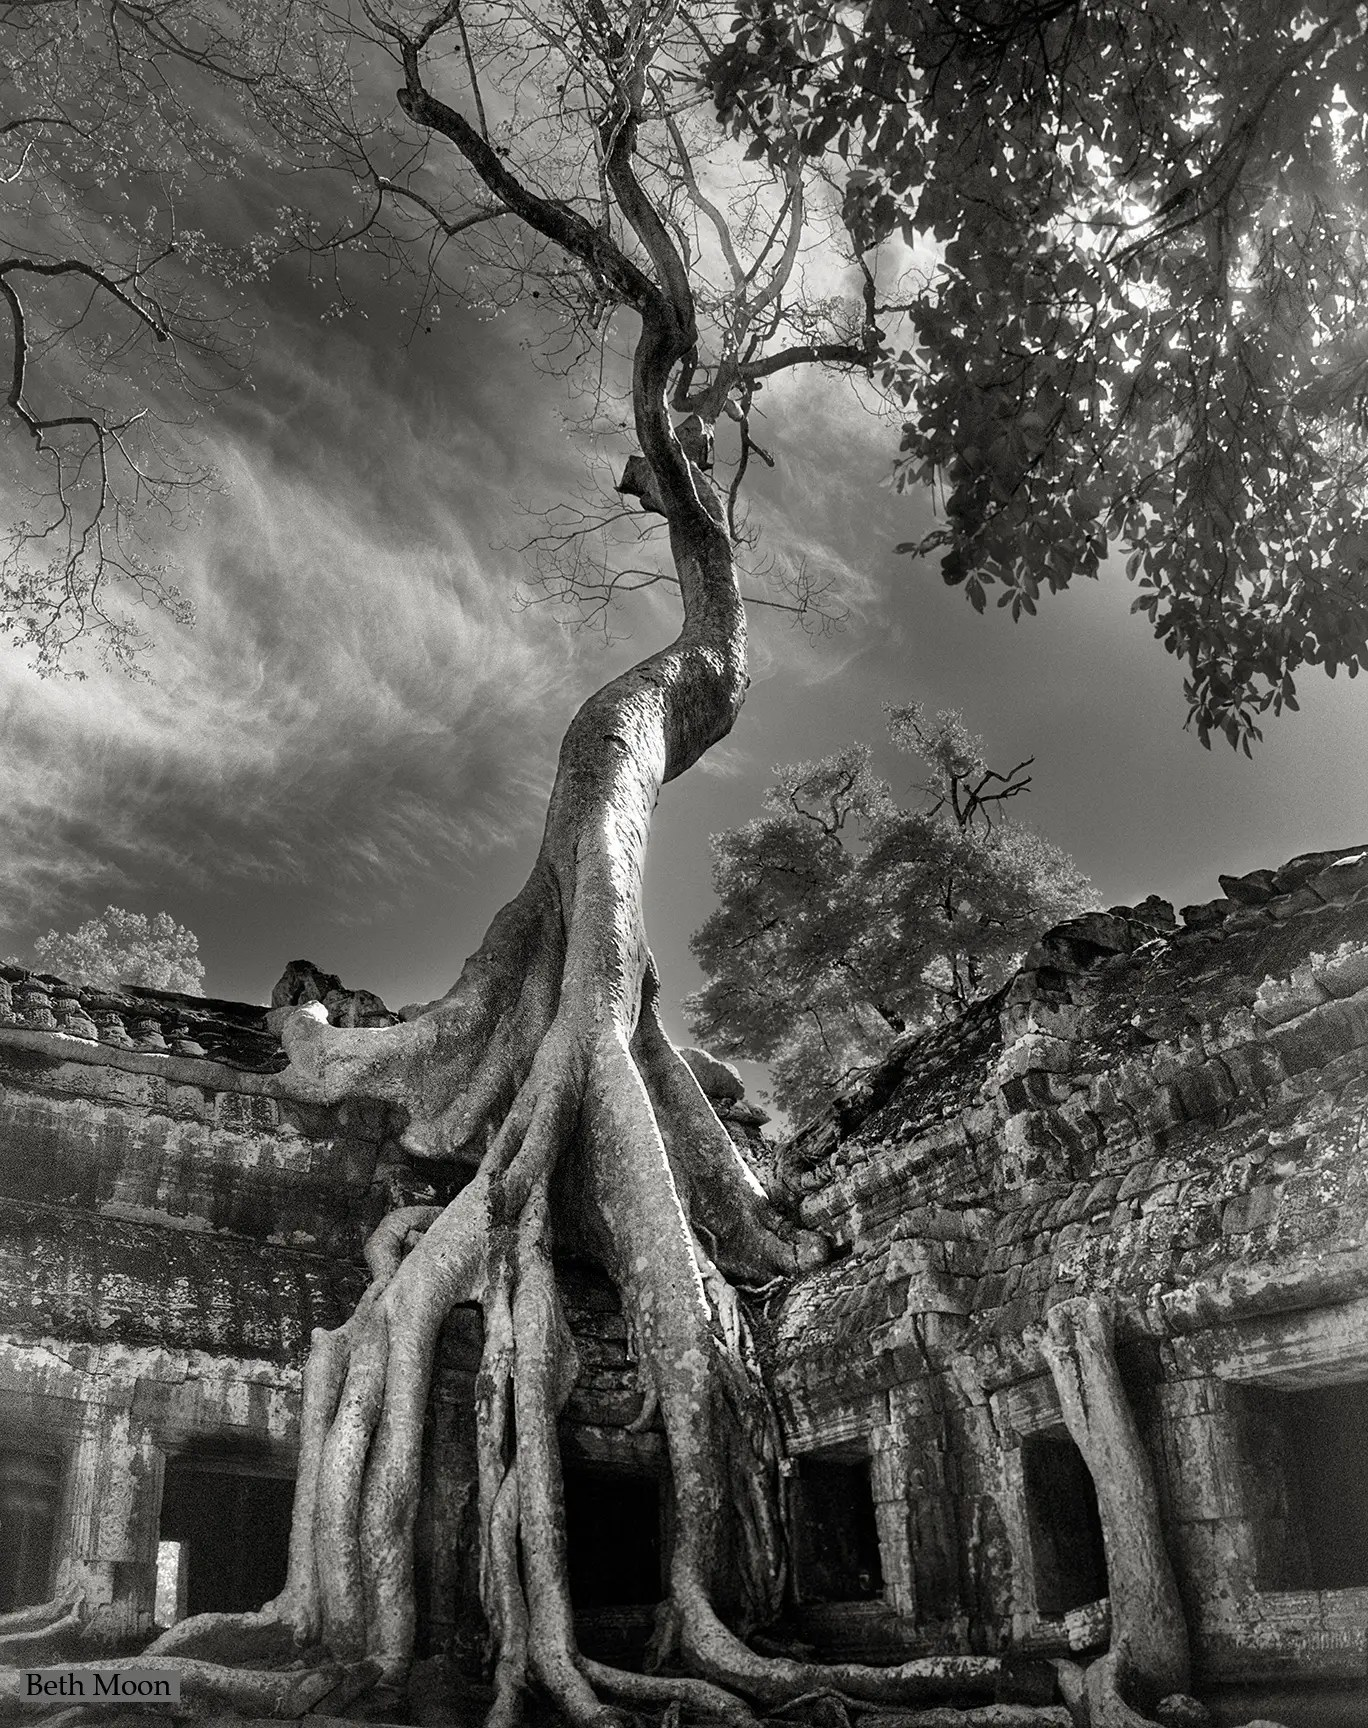 This tree, known as Rilke's Banyon, grow around a Buddhist temple in Siem Reap, Cambodia. The trees can grow 150 feet or taller, and their roots can work to tear up the ancient stone work of the building as they search for soil.